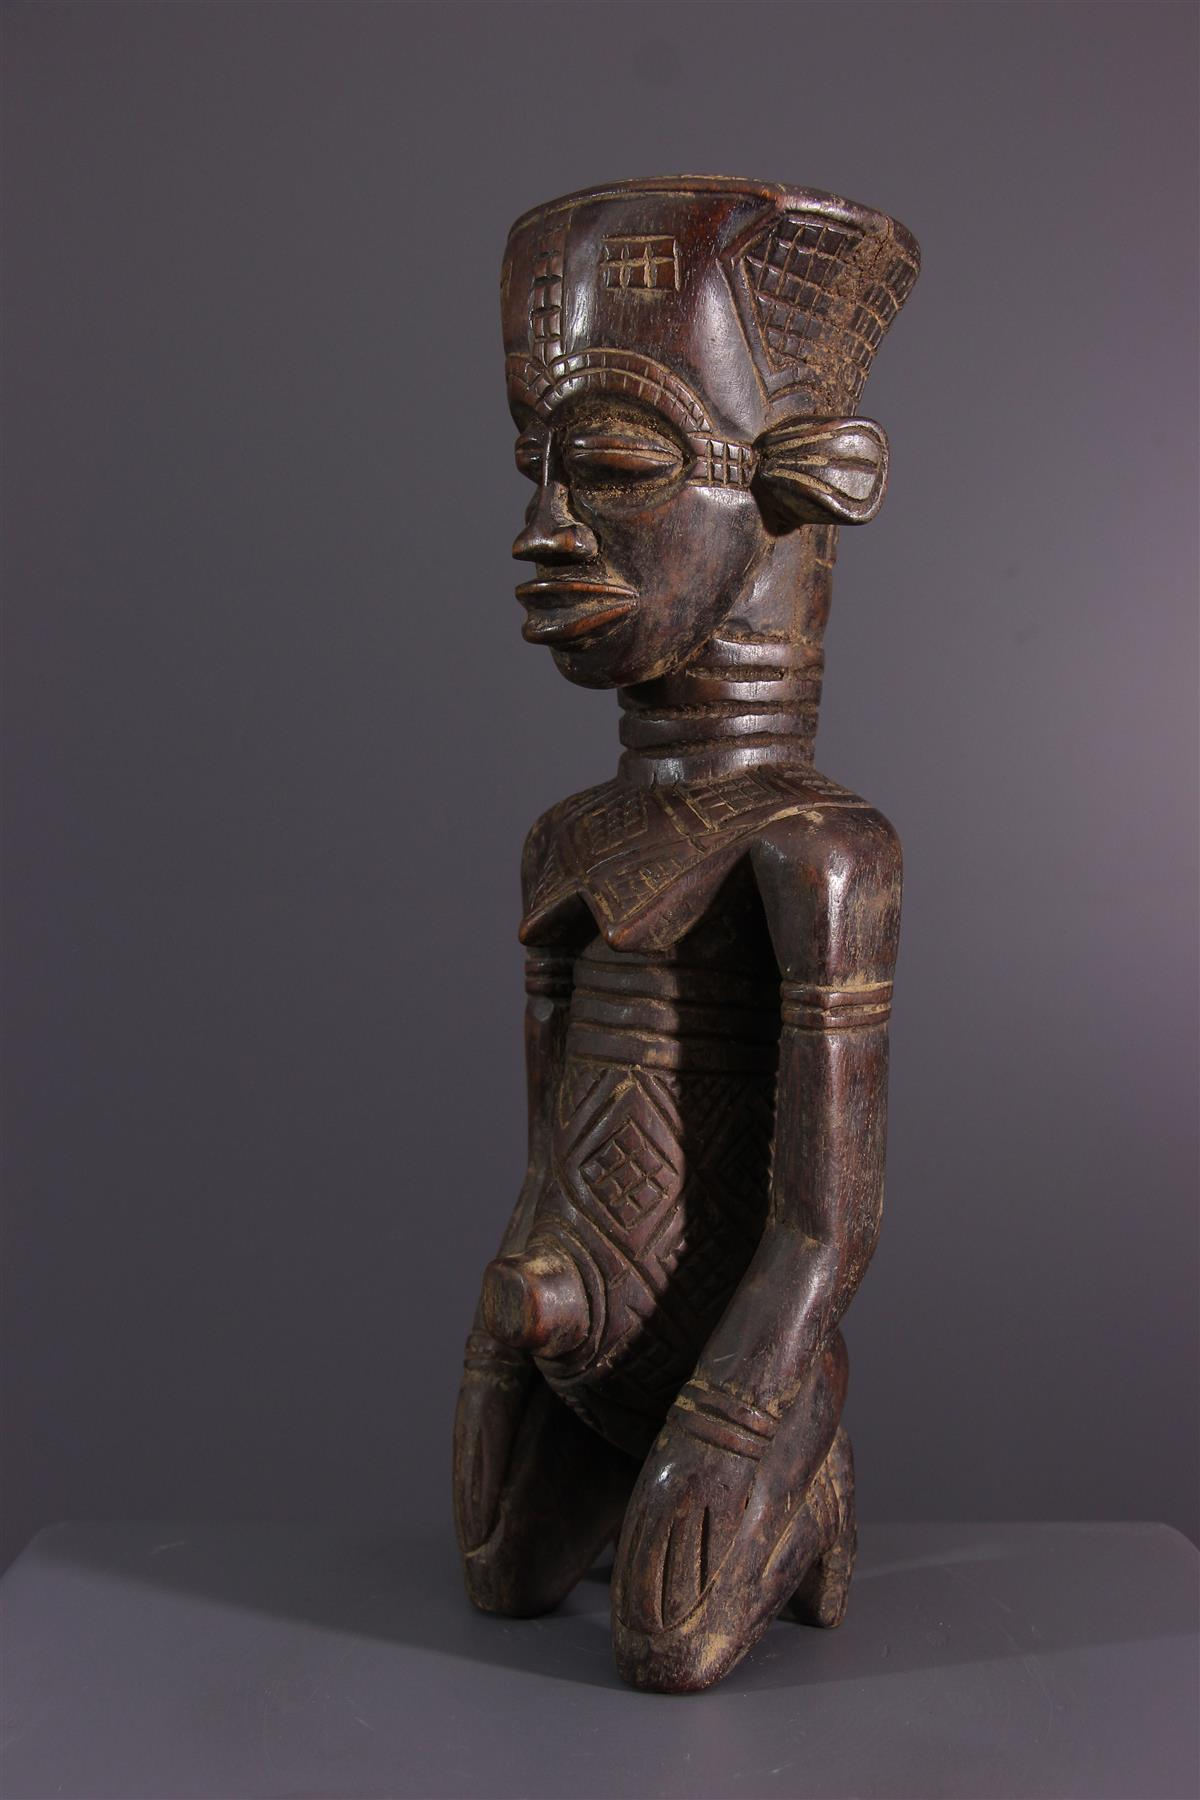 Statuette Ndengese - African art